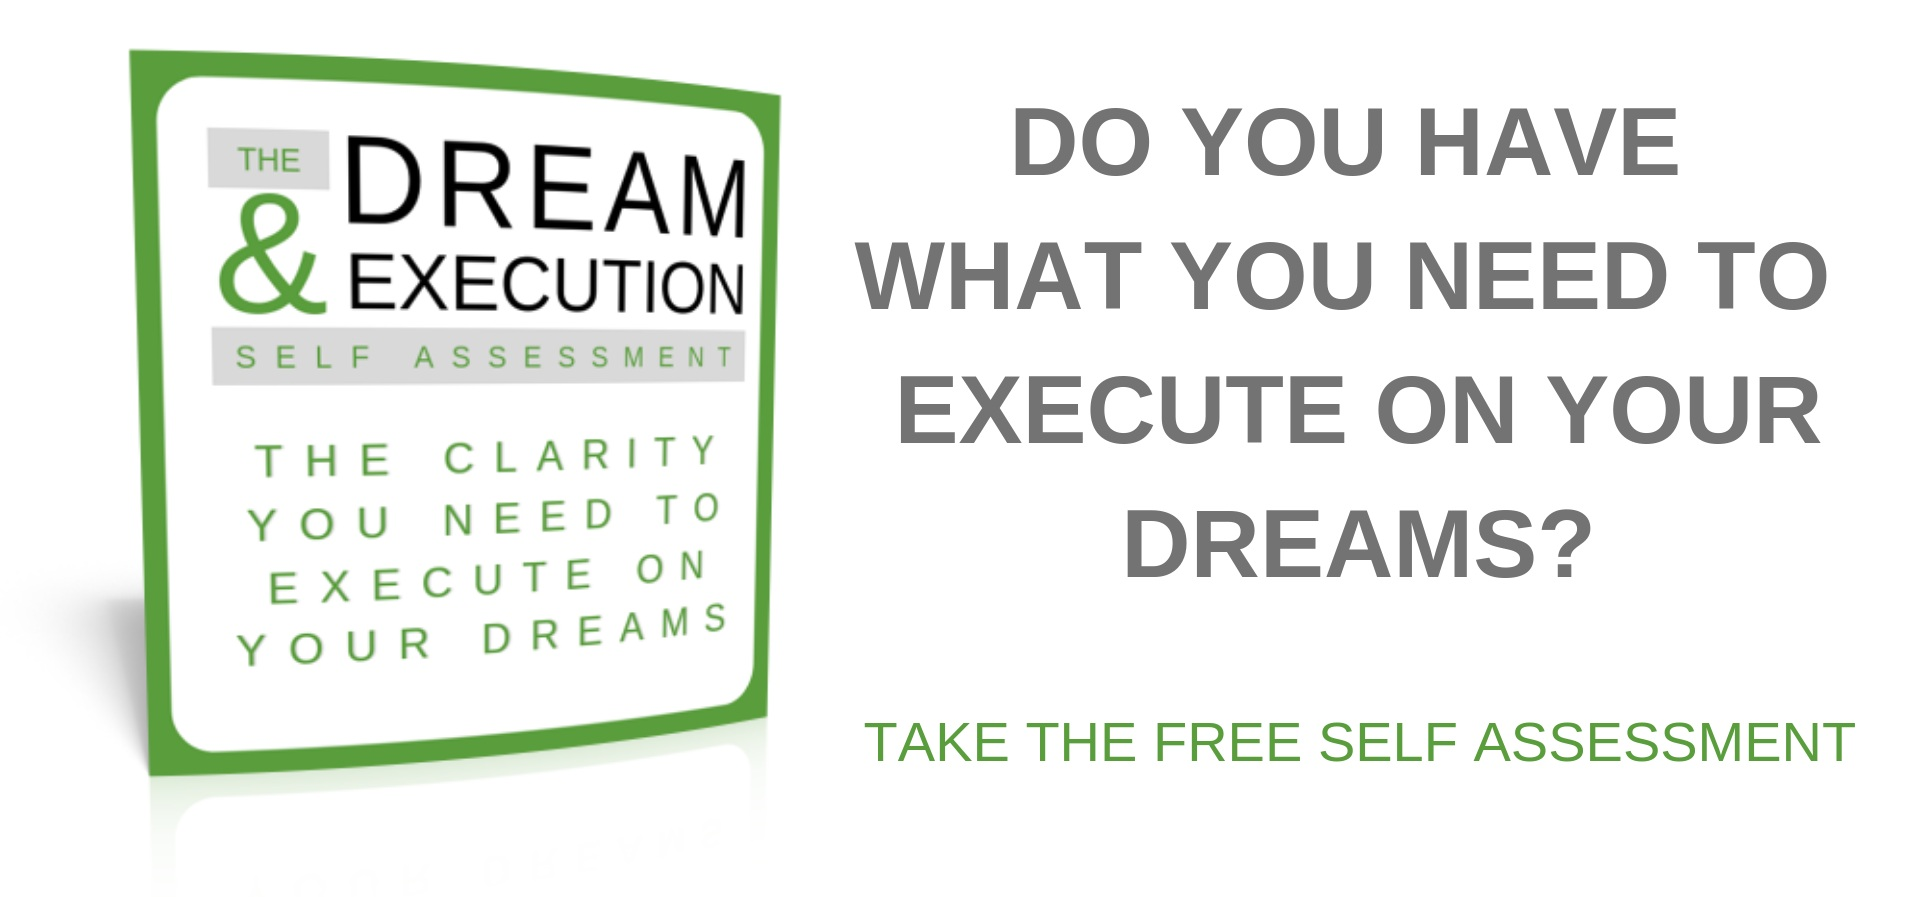 Will+you+execute+on+your+dreams_.jpg